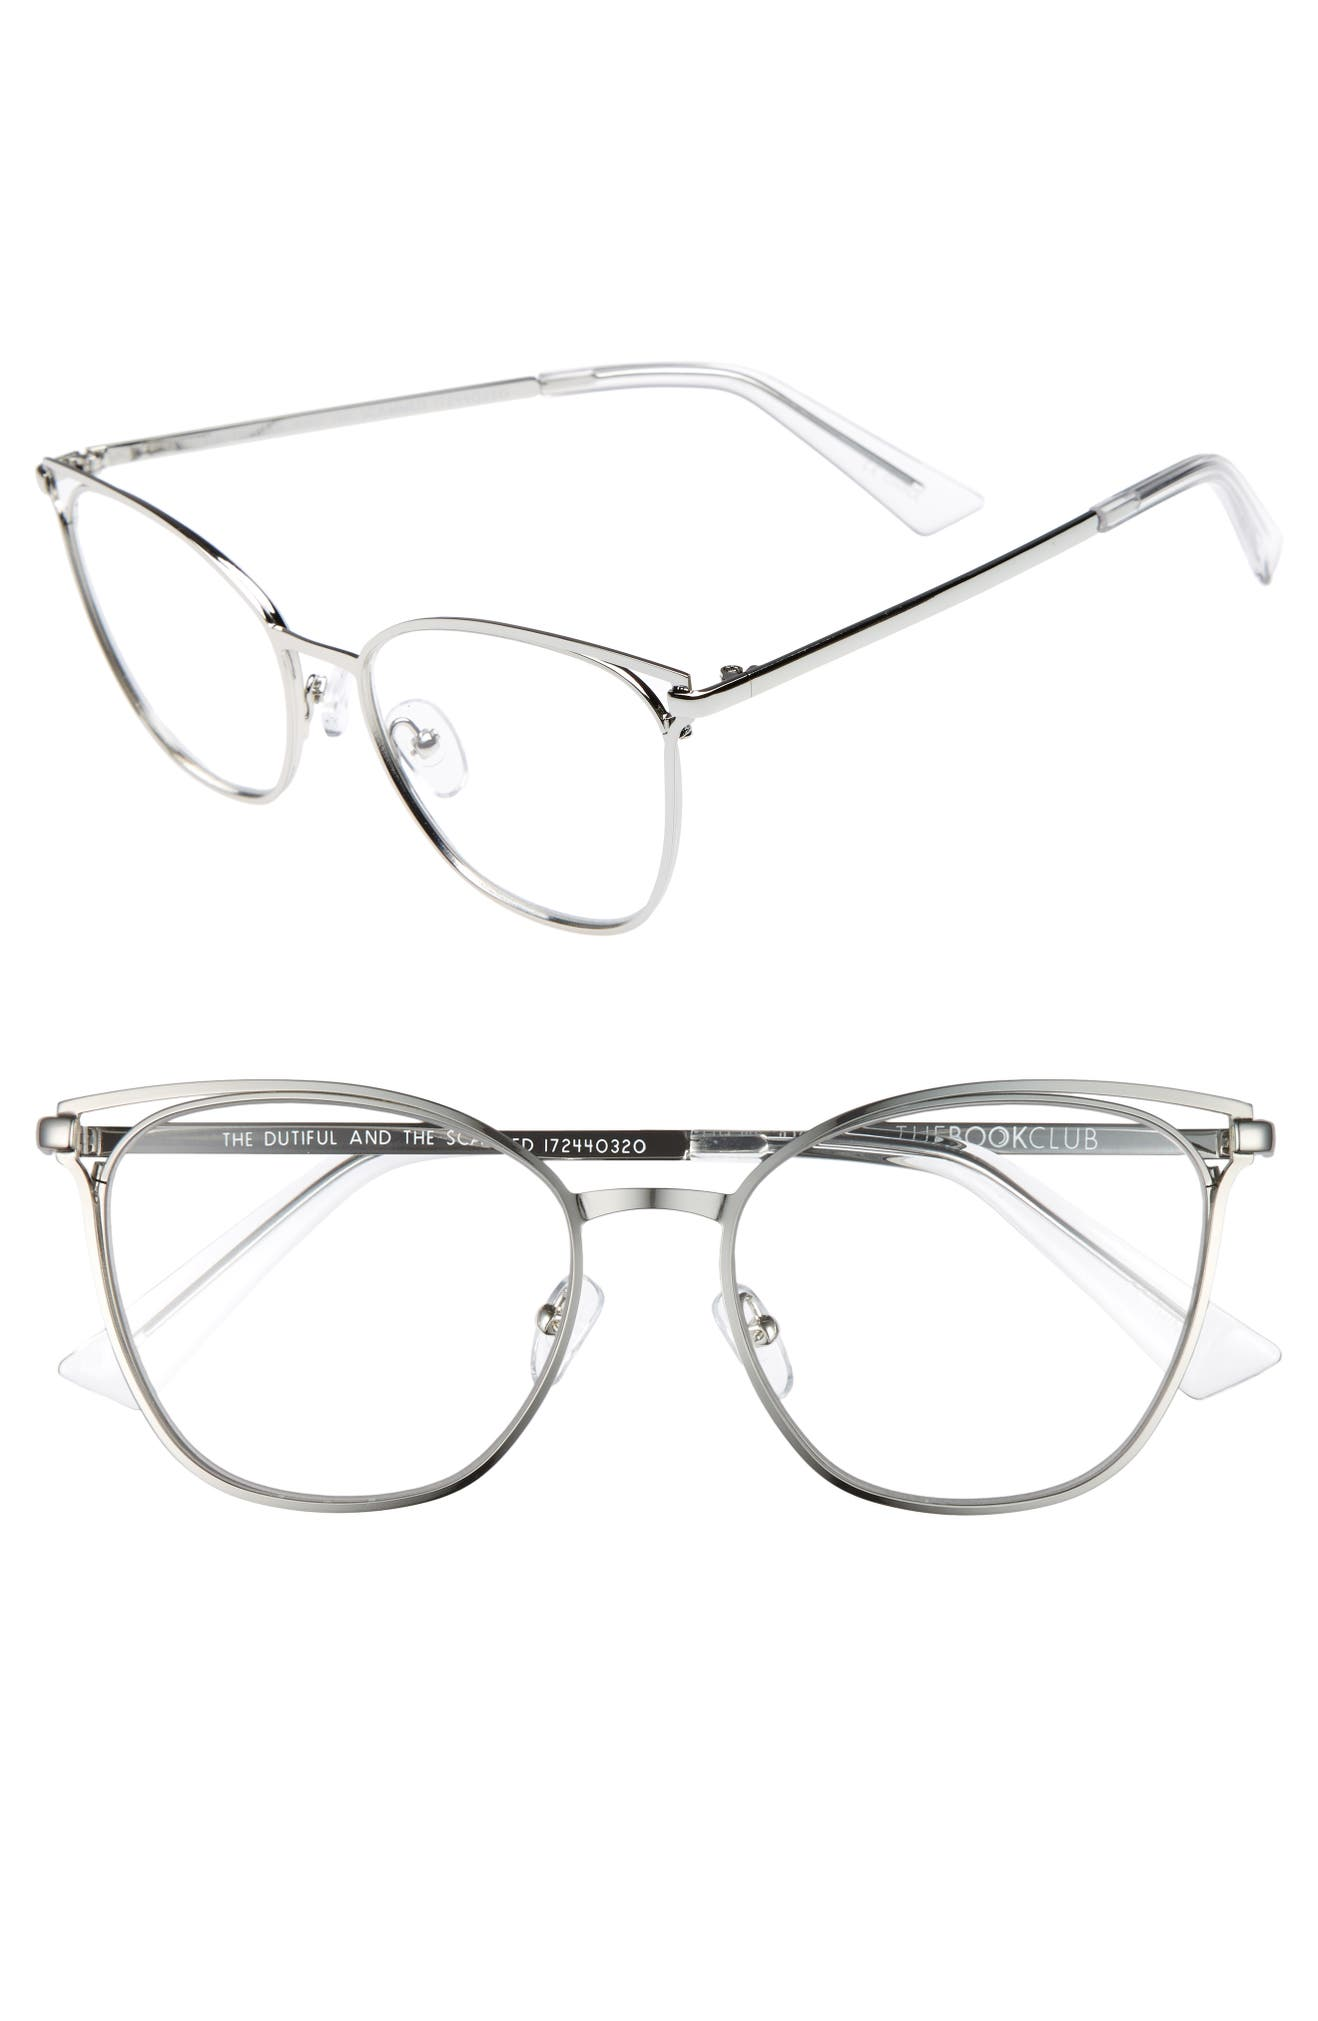 24e6900981c The Bookclub The Dutiful And The Scammed 53mm Reading Glasses ...